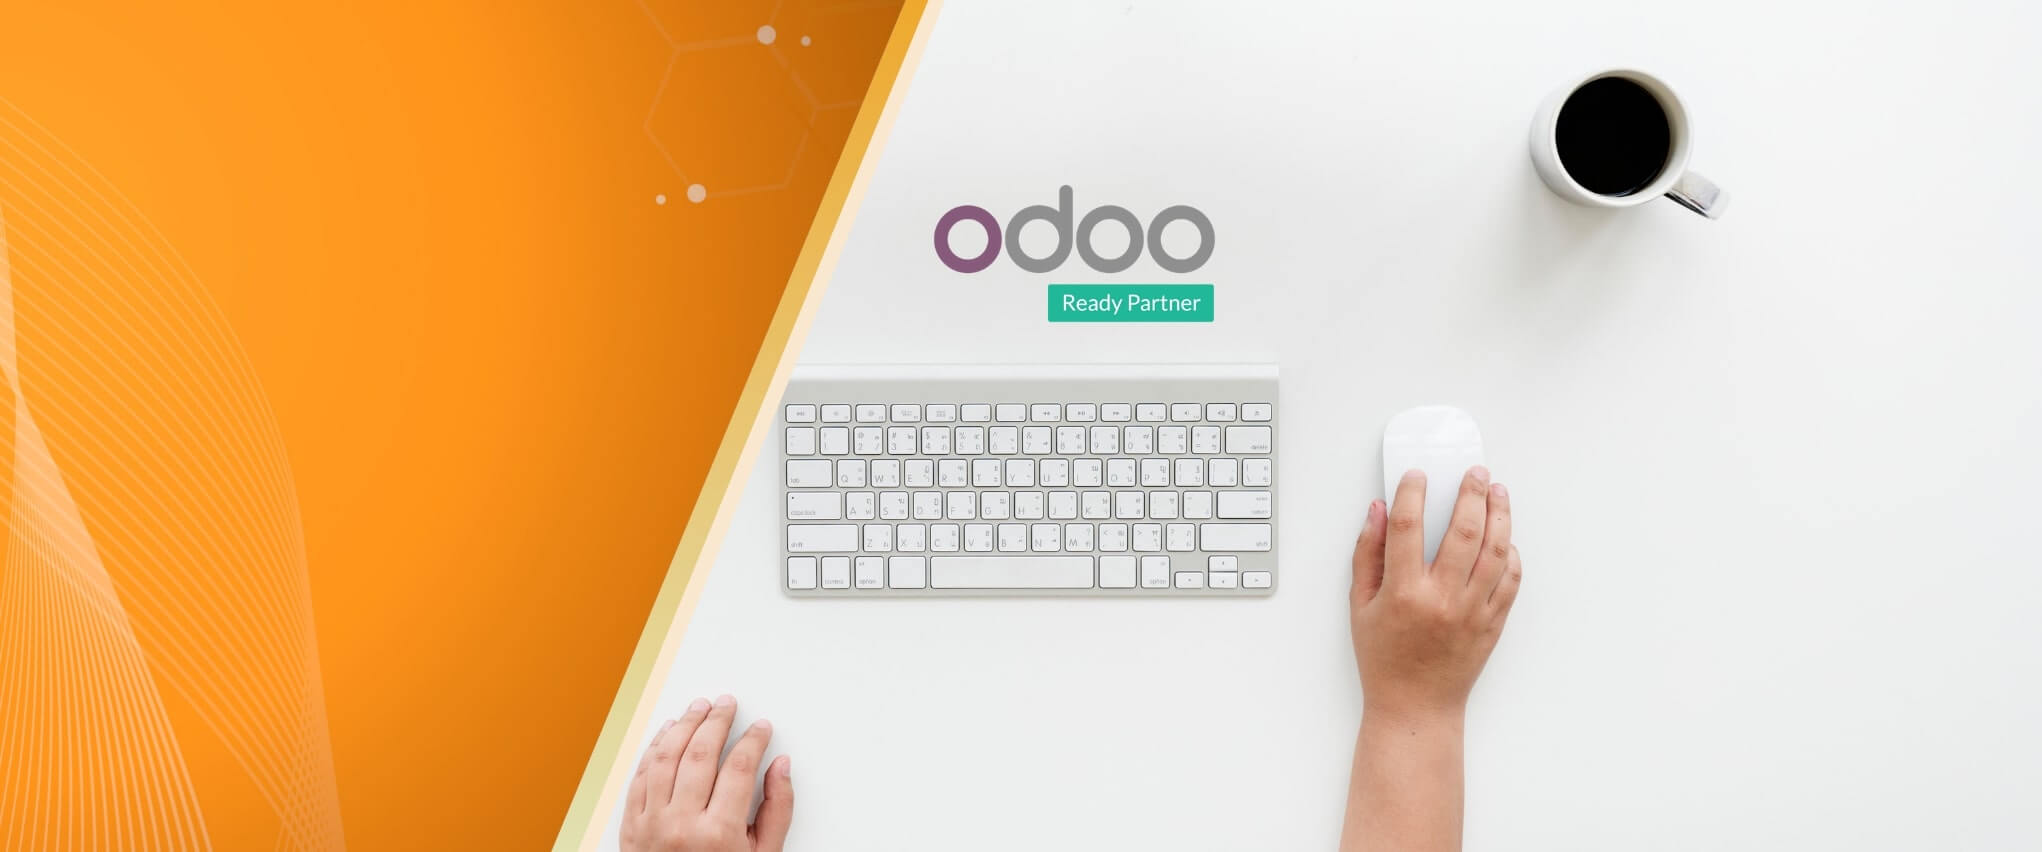 ODOO SOLUTIONS